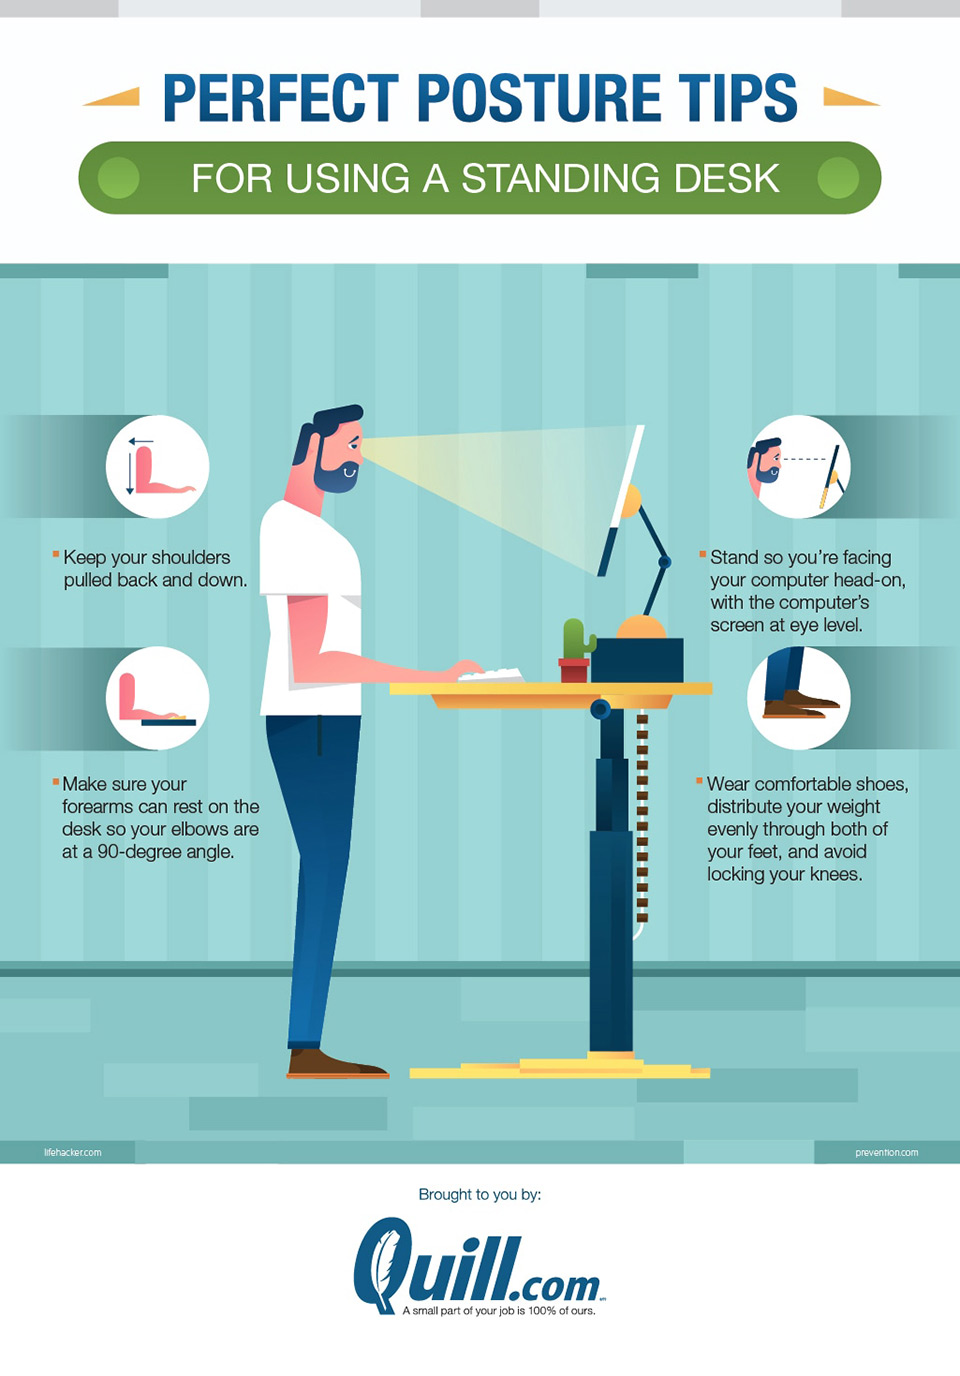 The benefits of standing desk